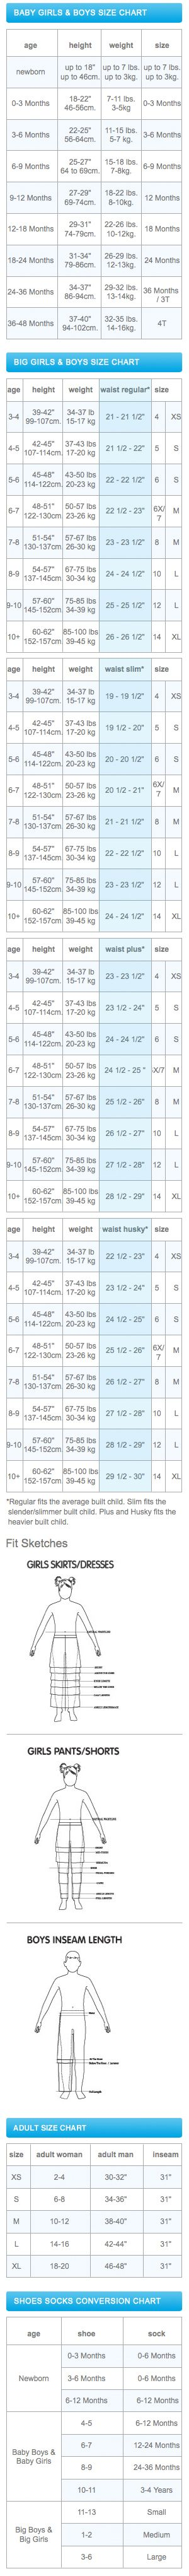 Size chart for my nieces and nephews! It's been a long time since I've bought for little ones.